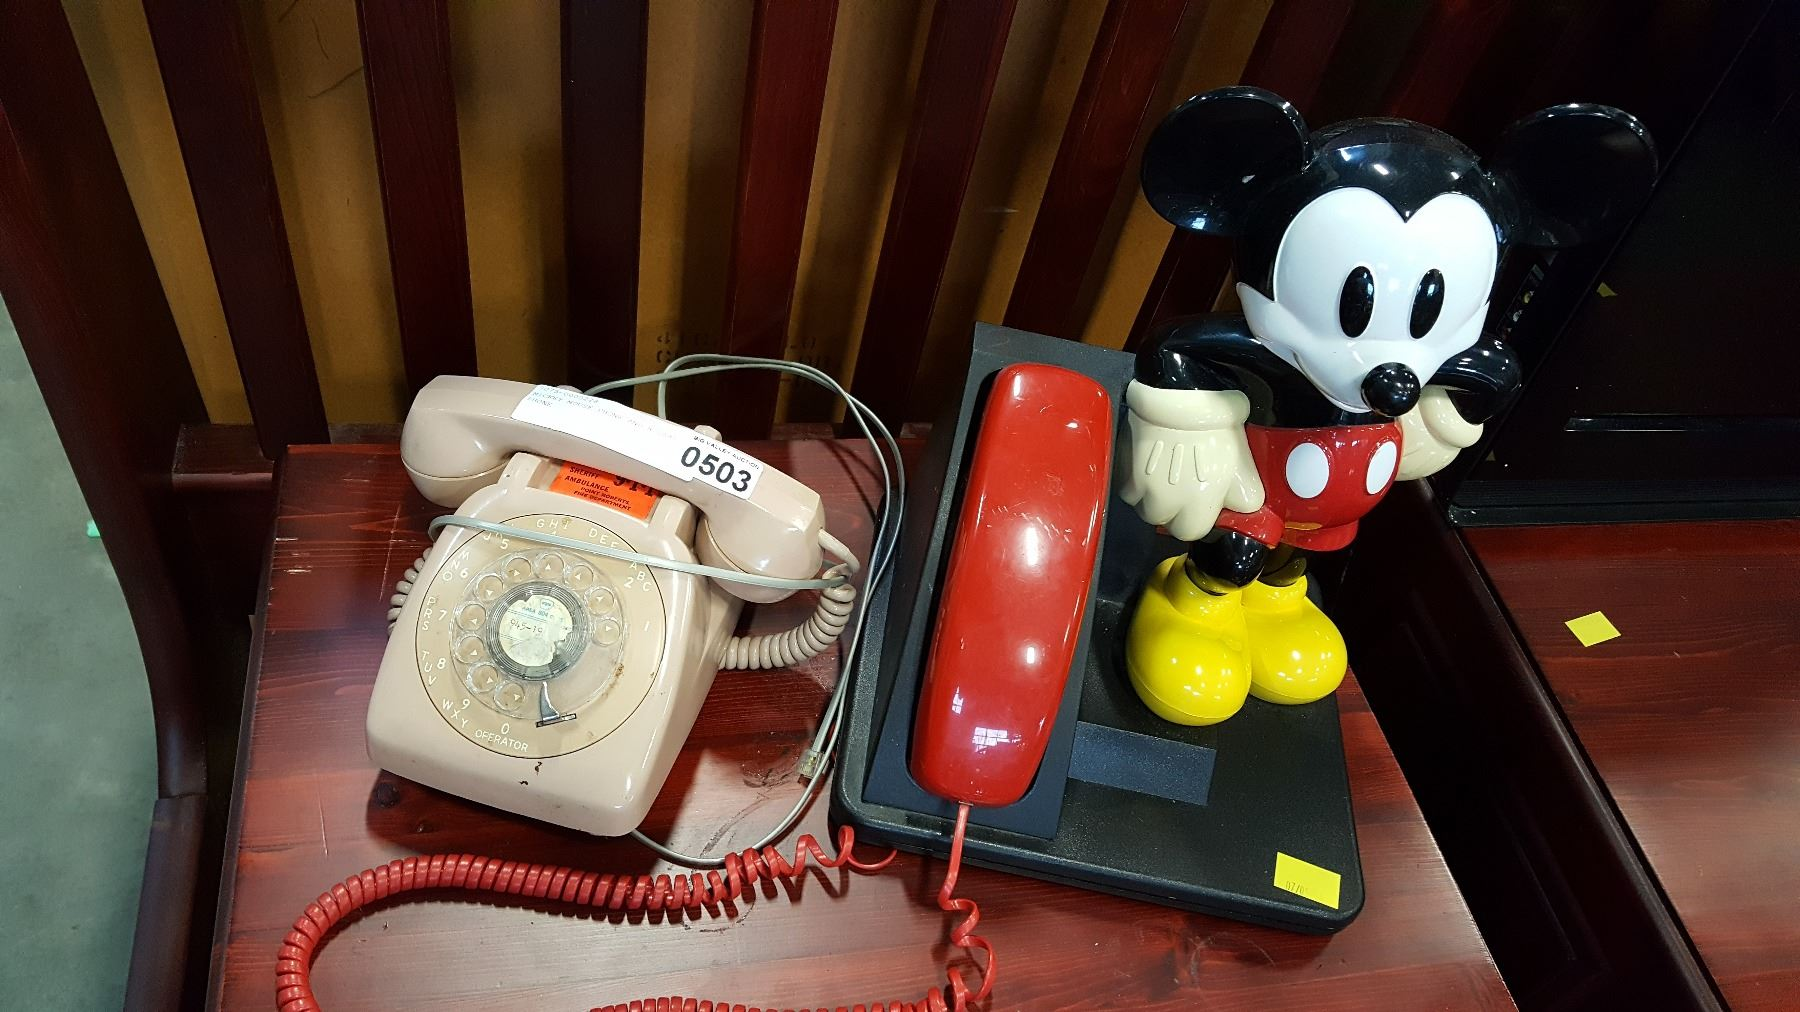 medium resolution of image 1 mickey mouse phone and rotary phone